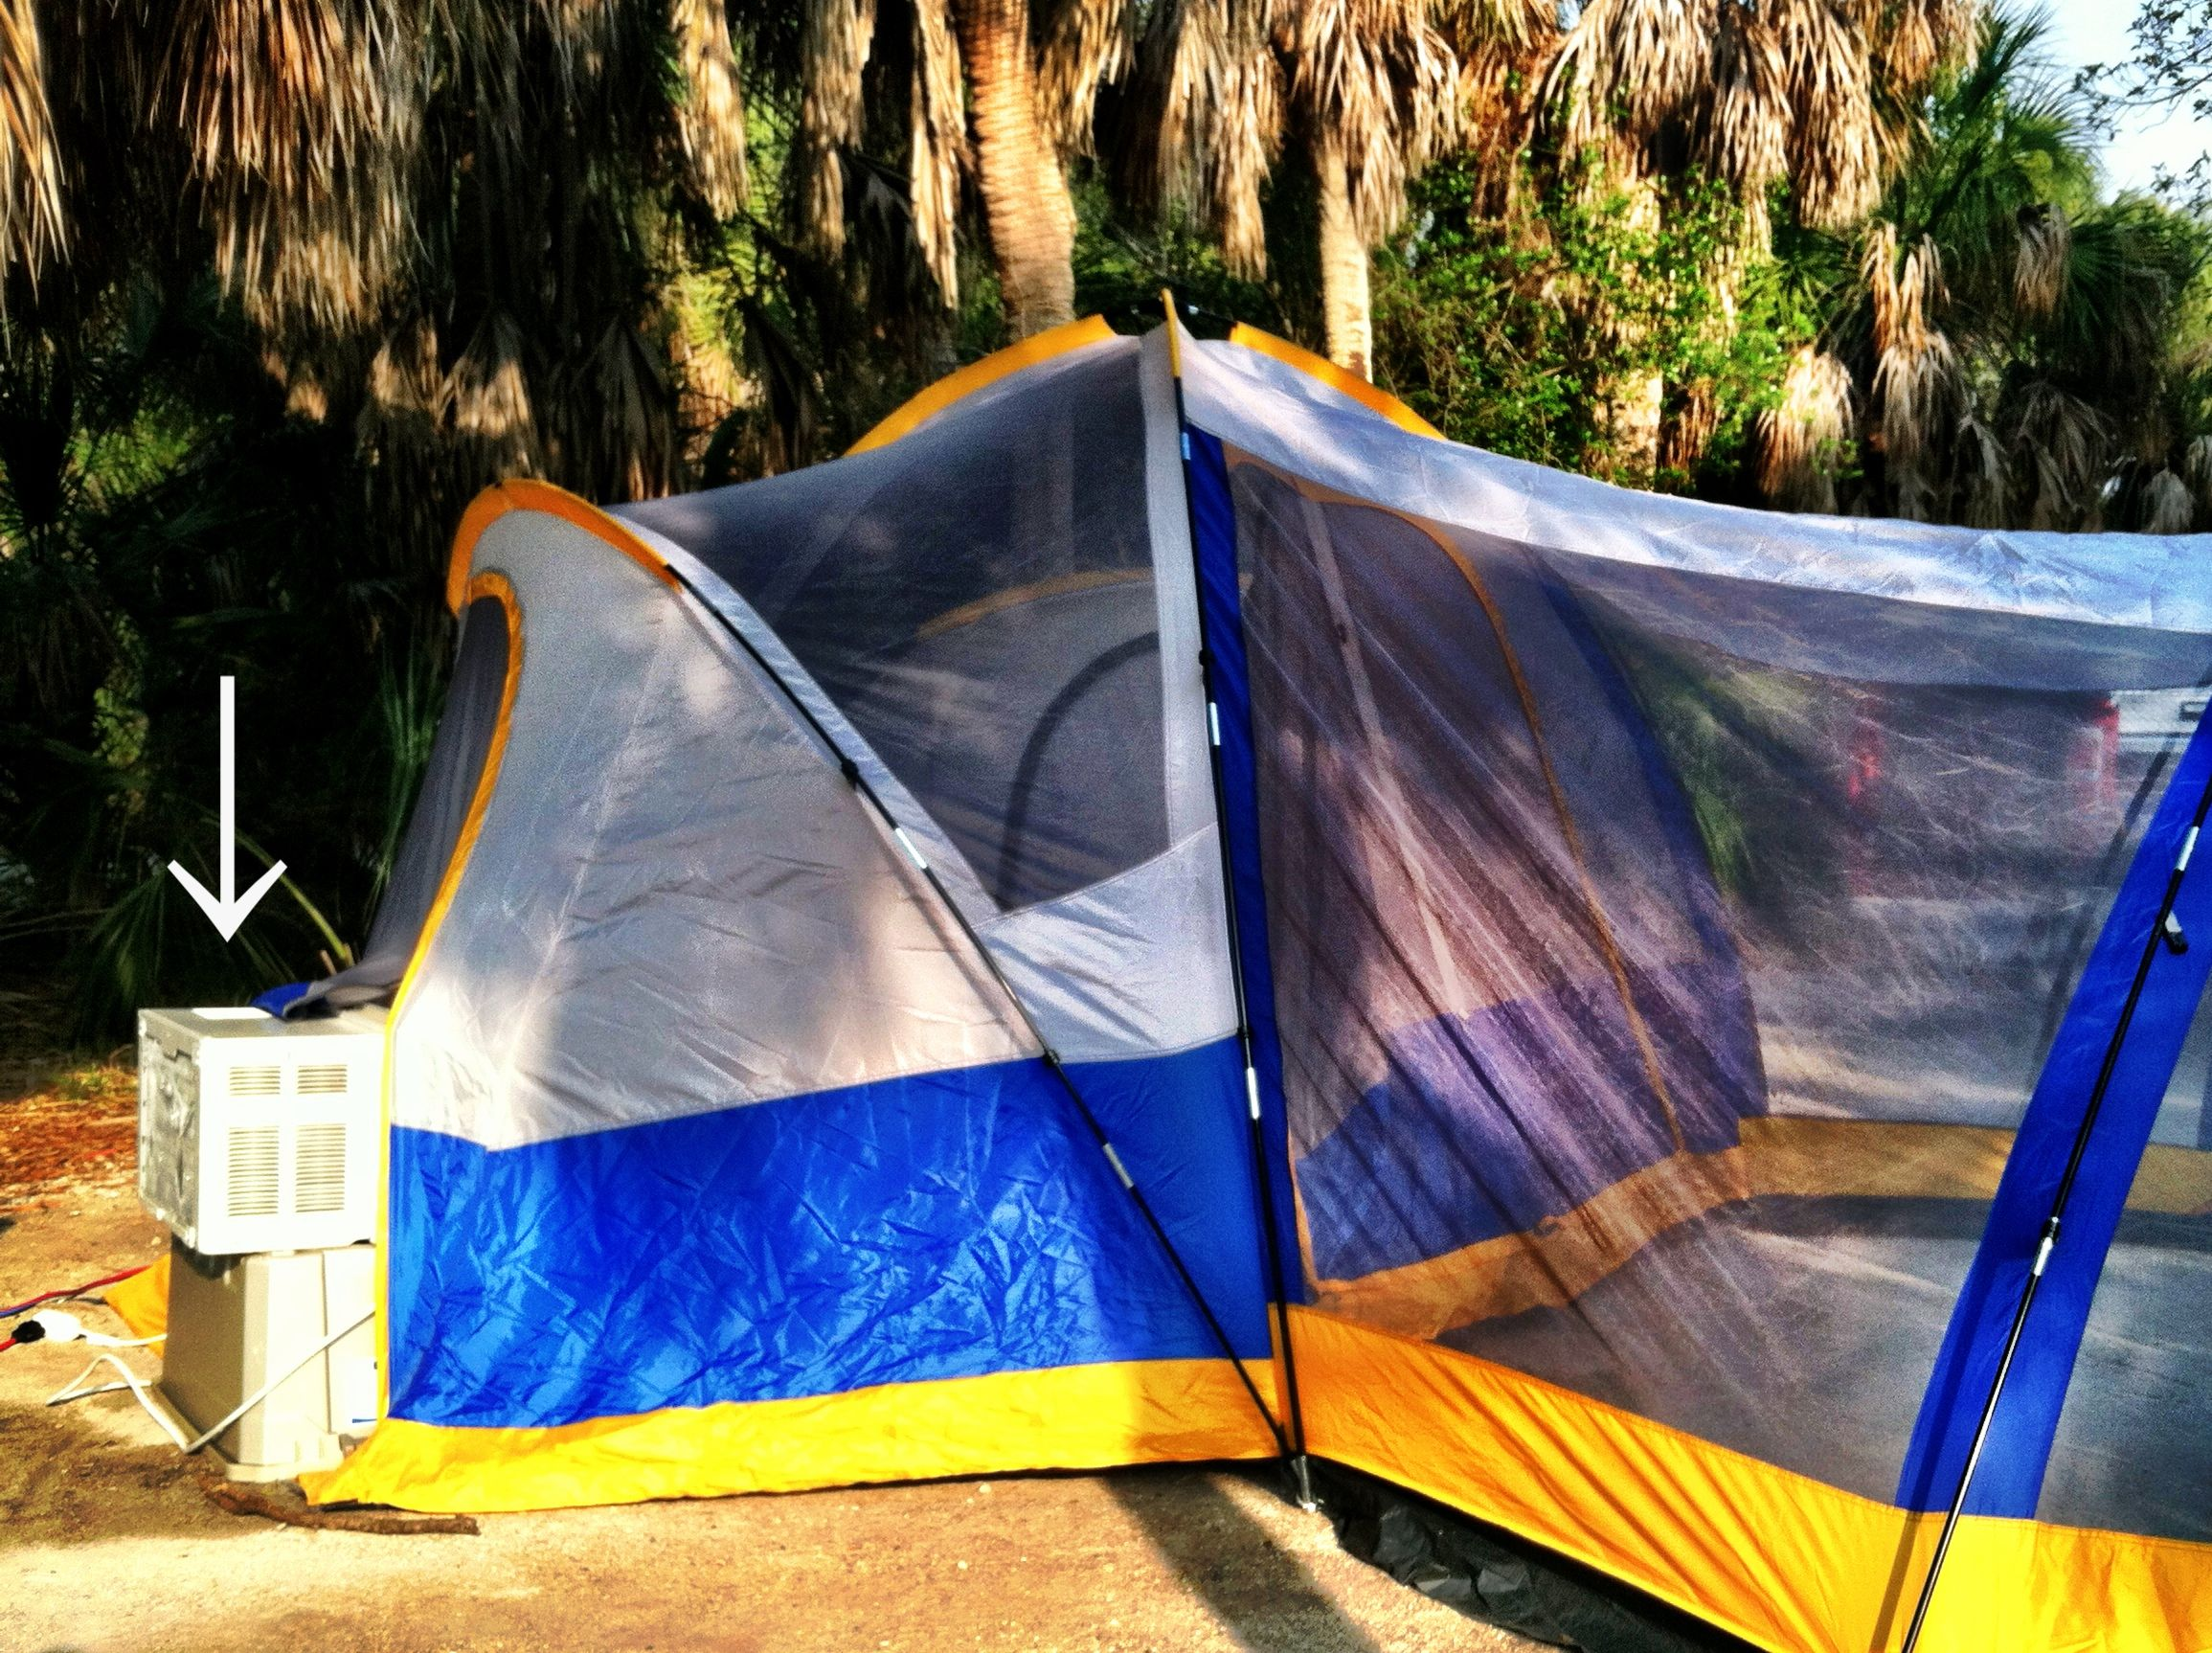 How to survive tent c&ing during a Florida summer. -) & How to survive tent camping during a Florida summer. :-) | For the ...